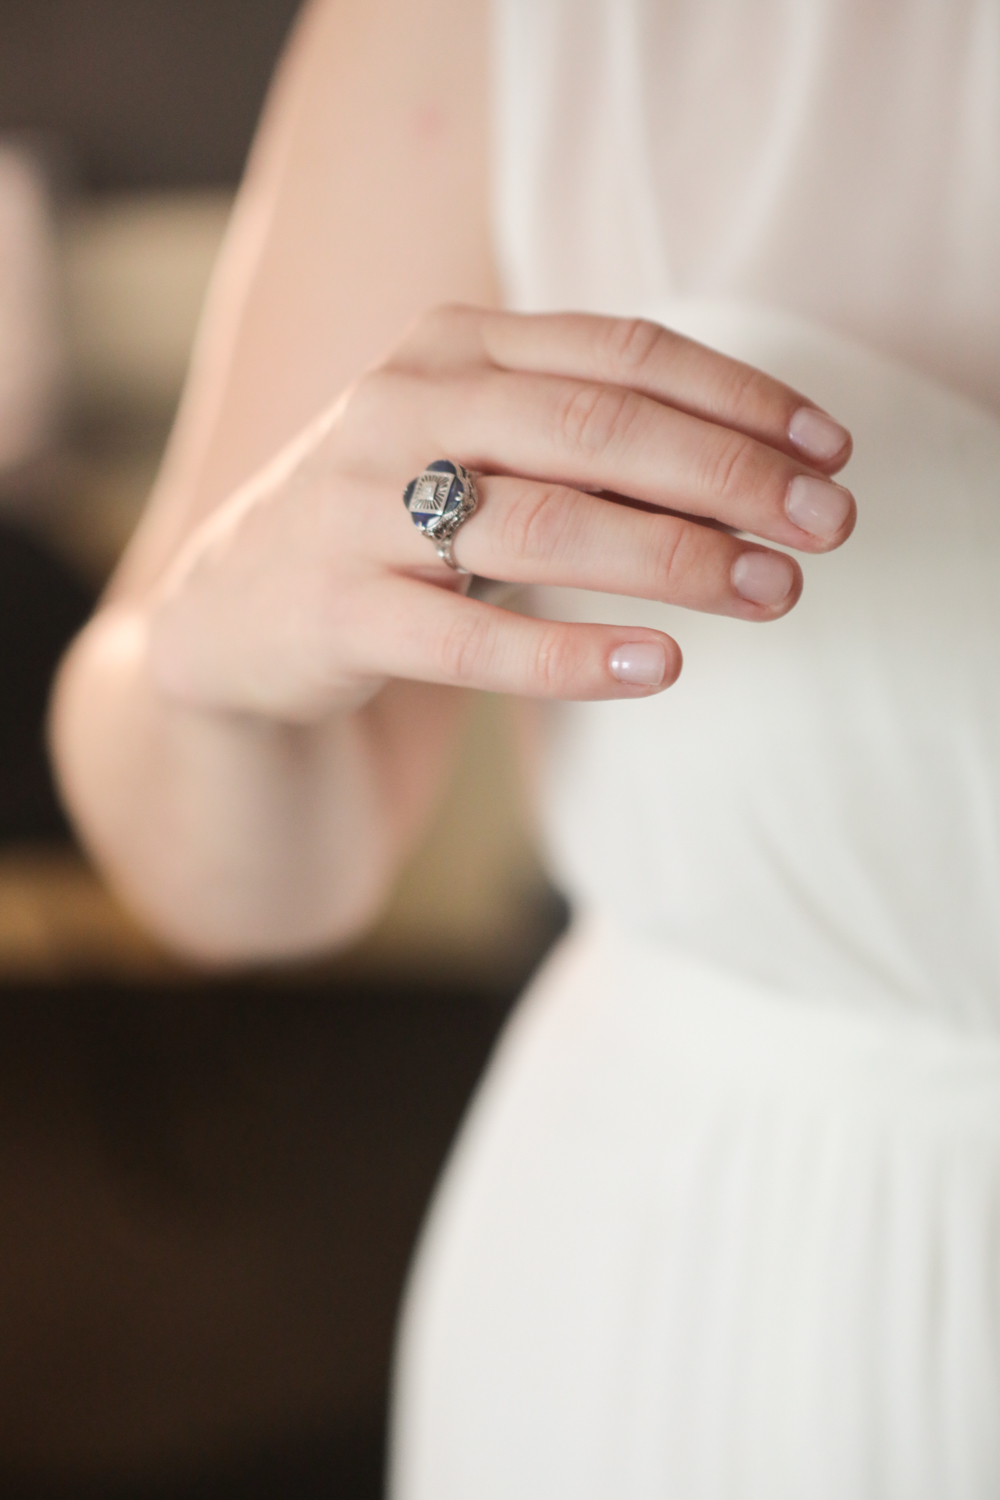 Bride shows off her grandmother's wedding ring that she is wearing on her right hand.